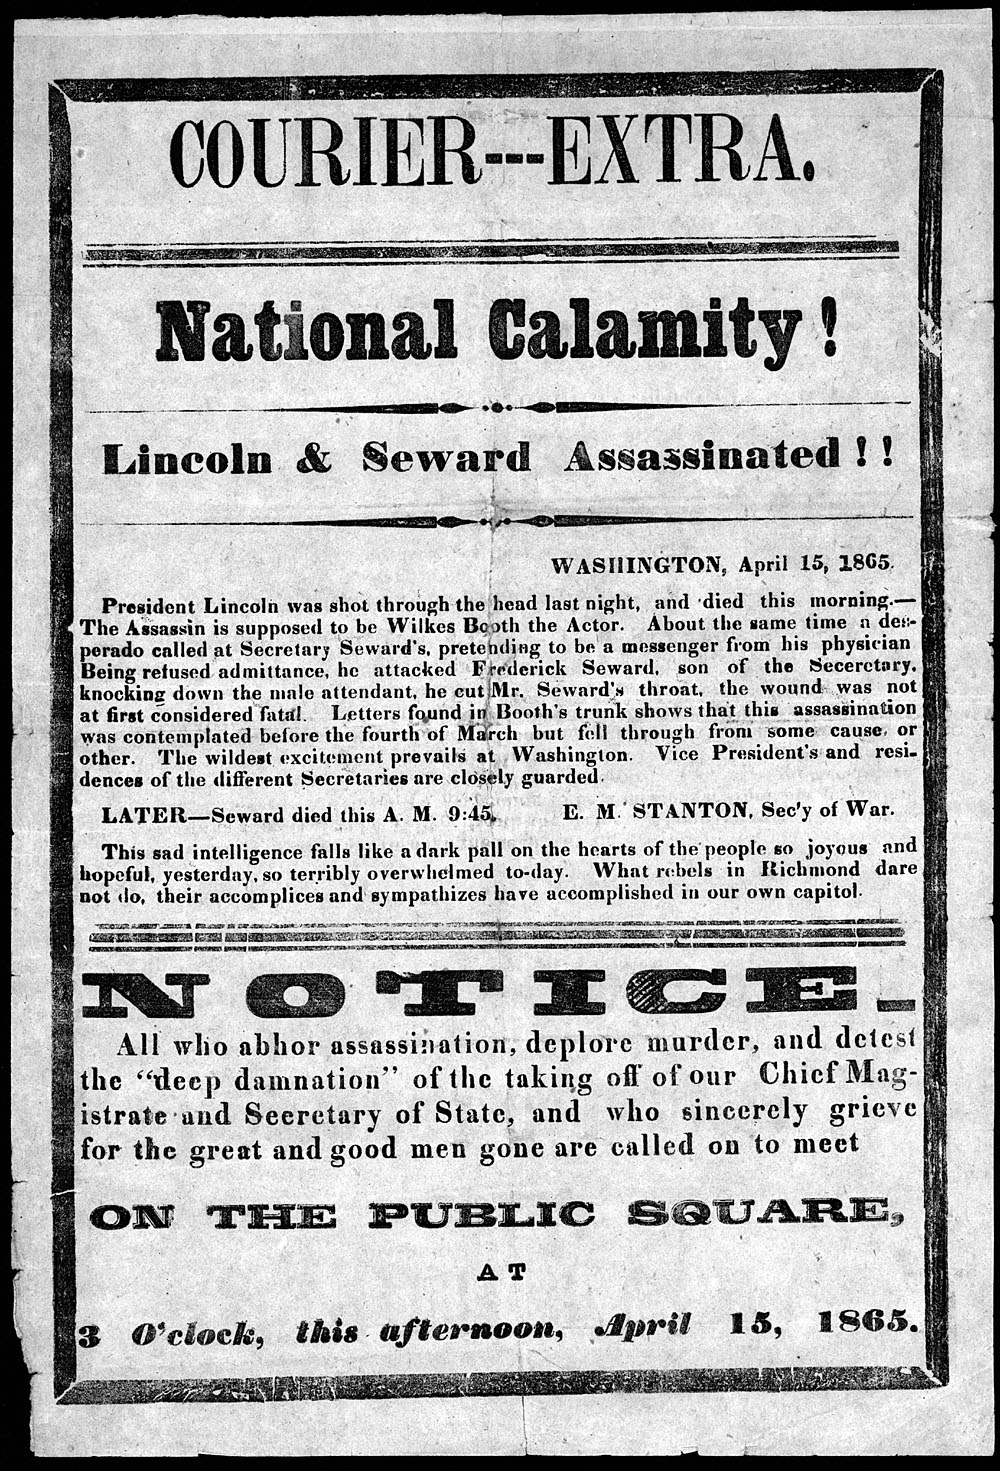 National calamity! Lincoln and Seward assassinated